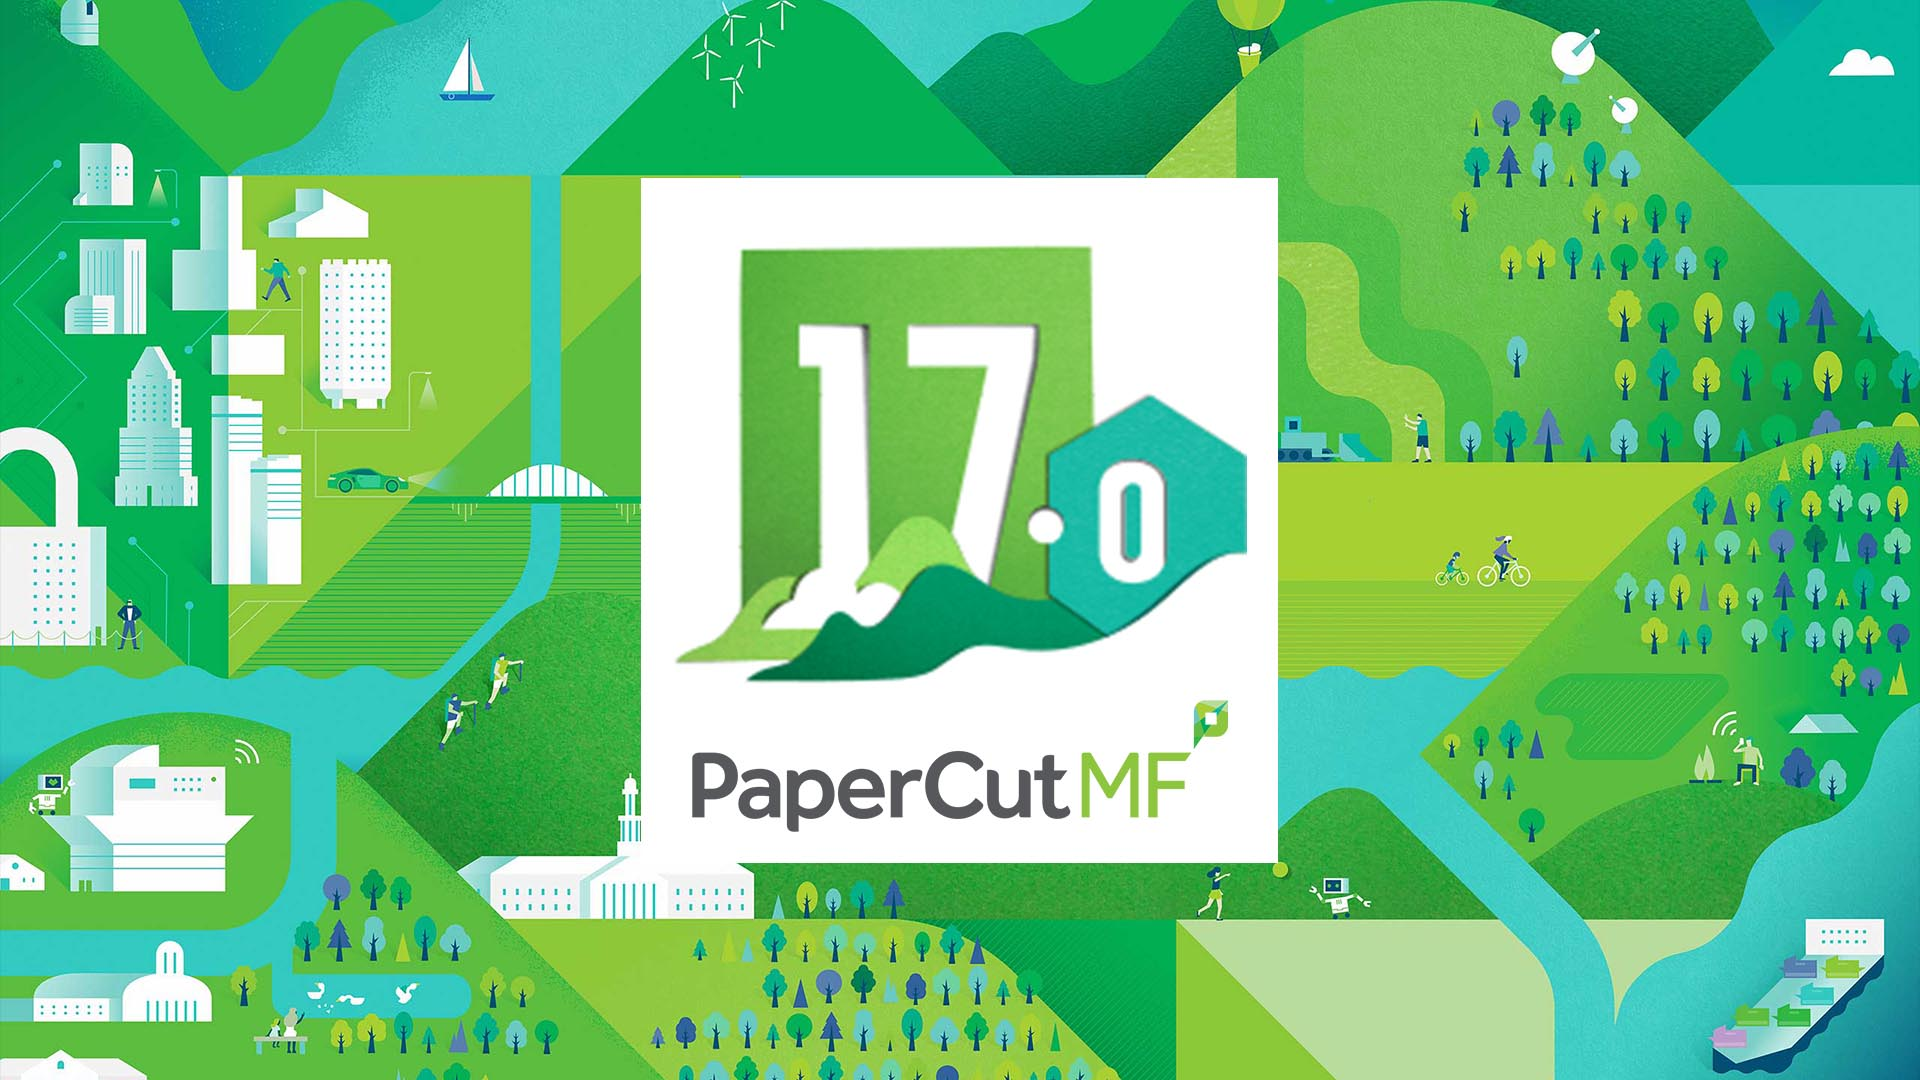 PaperCut Version 17 - Bild